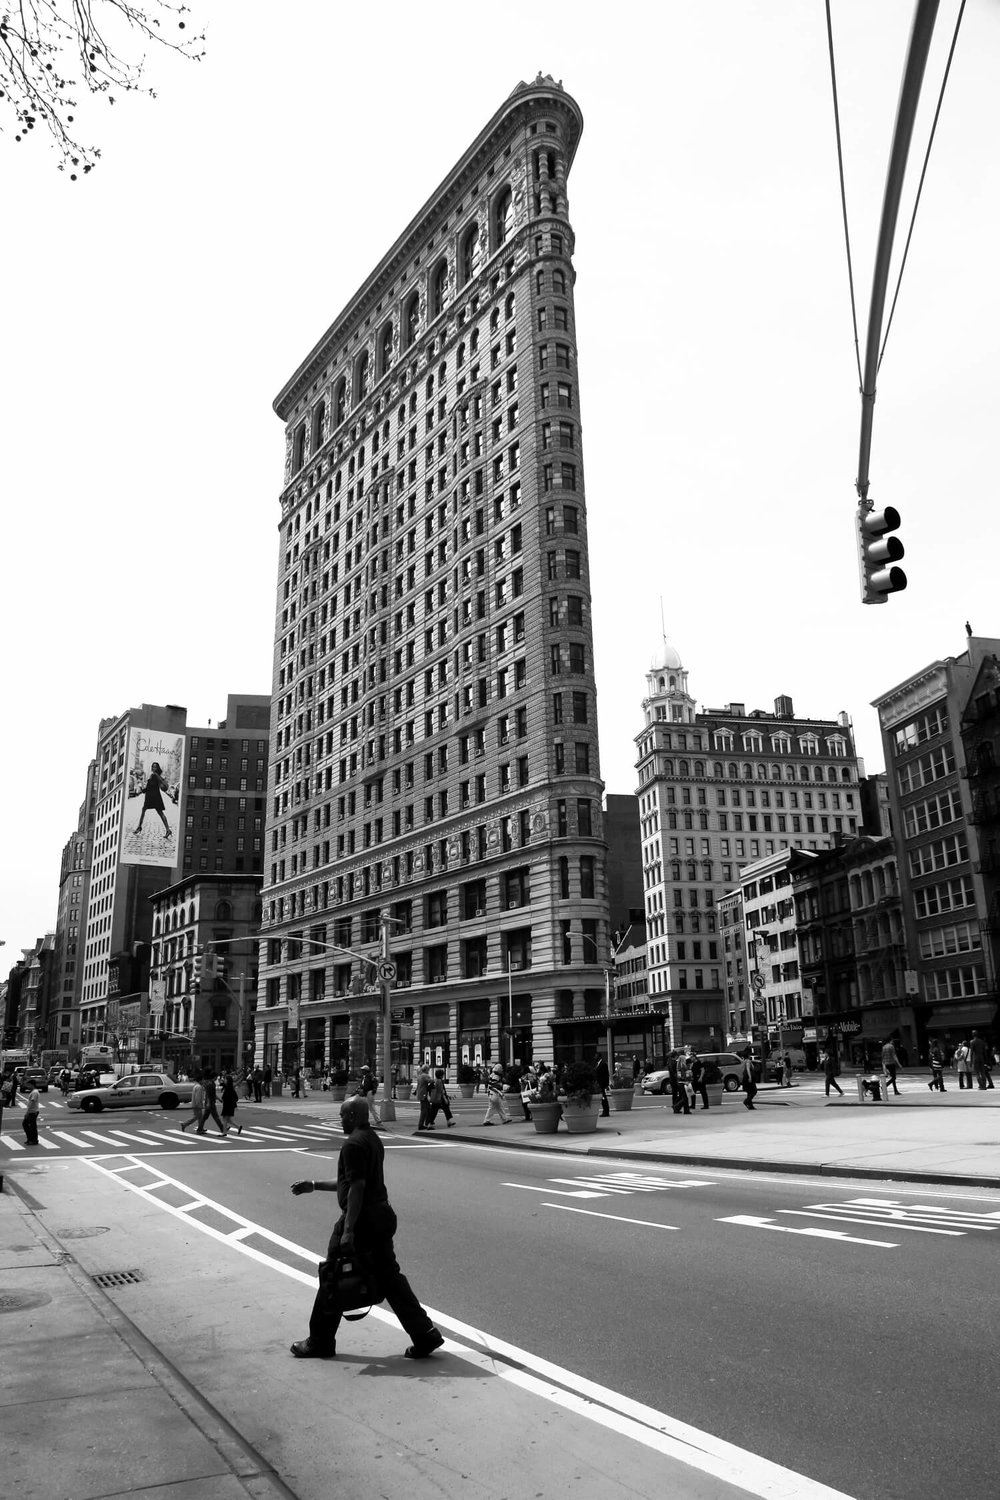 FLATIRON_BUILDING_NEW_YORK_2010_CLAUDE_DUSSEZ_0993.jpg